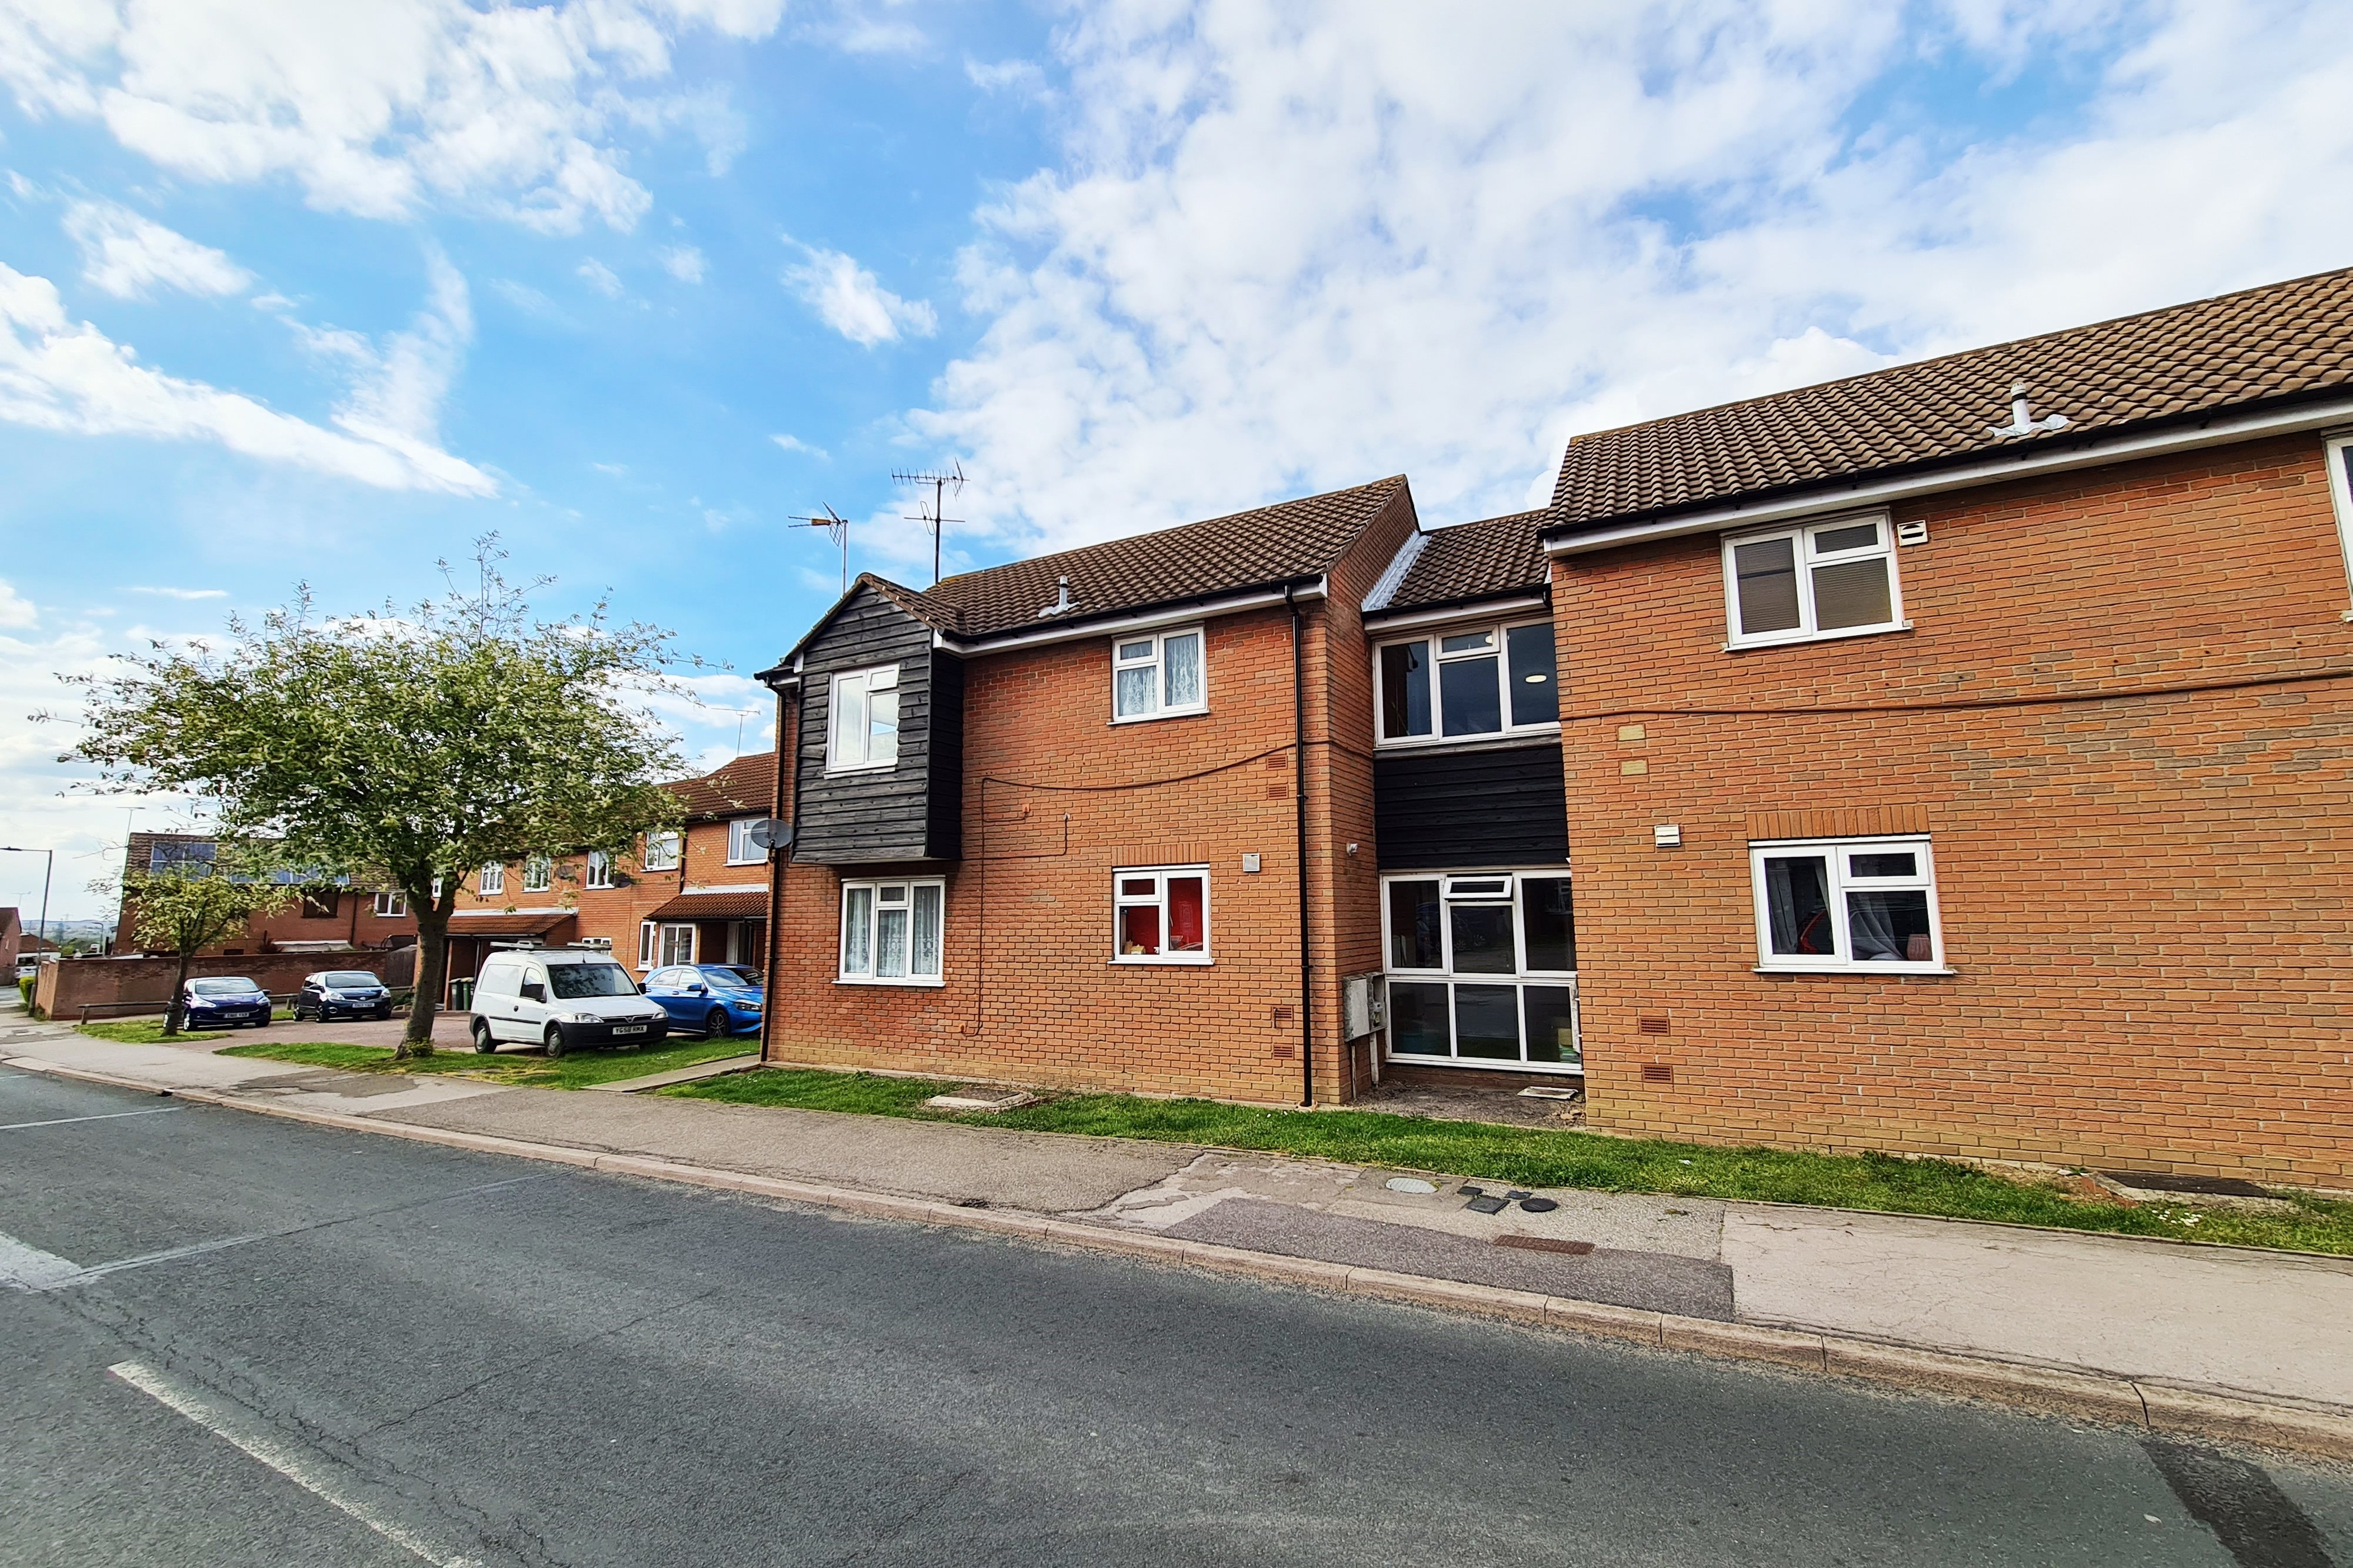 2 bed flat to rent in Bardfield Way, Rayleigh - Property Image 1